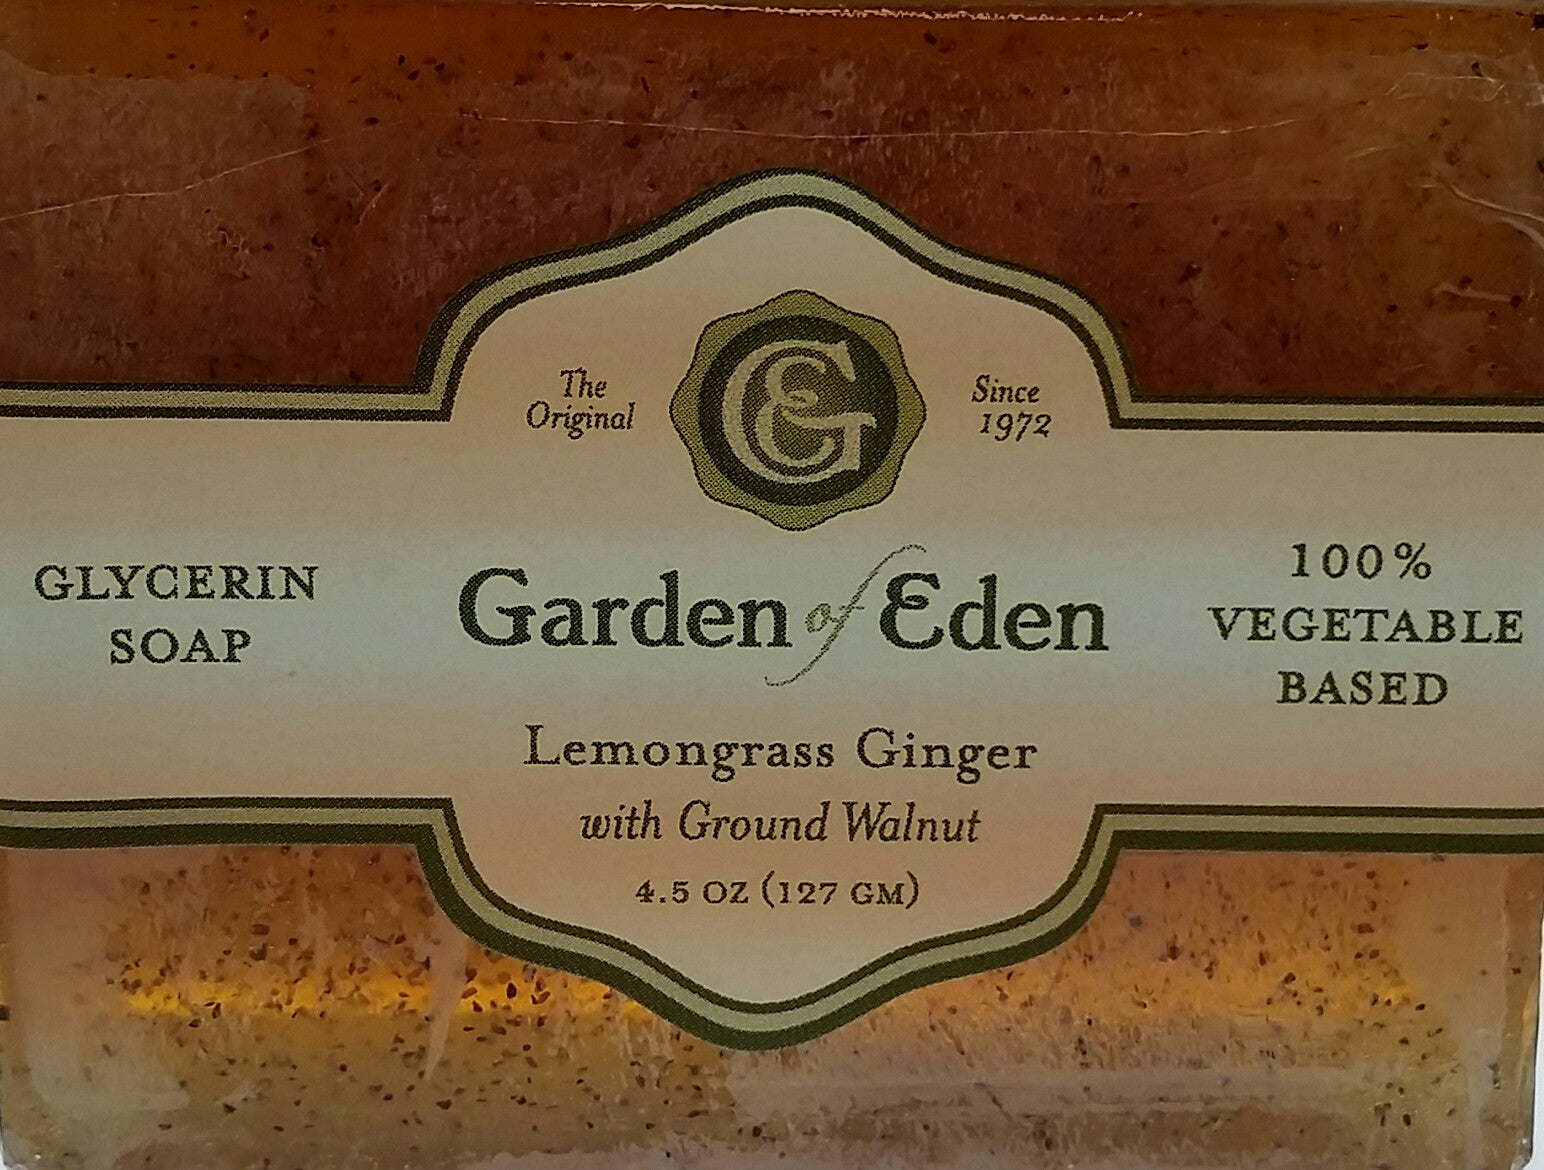 Garden of Eden Glycerin Soap - Lemongrass Ginger with Ground Walnut Bar